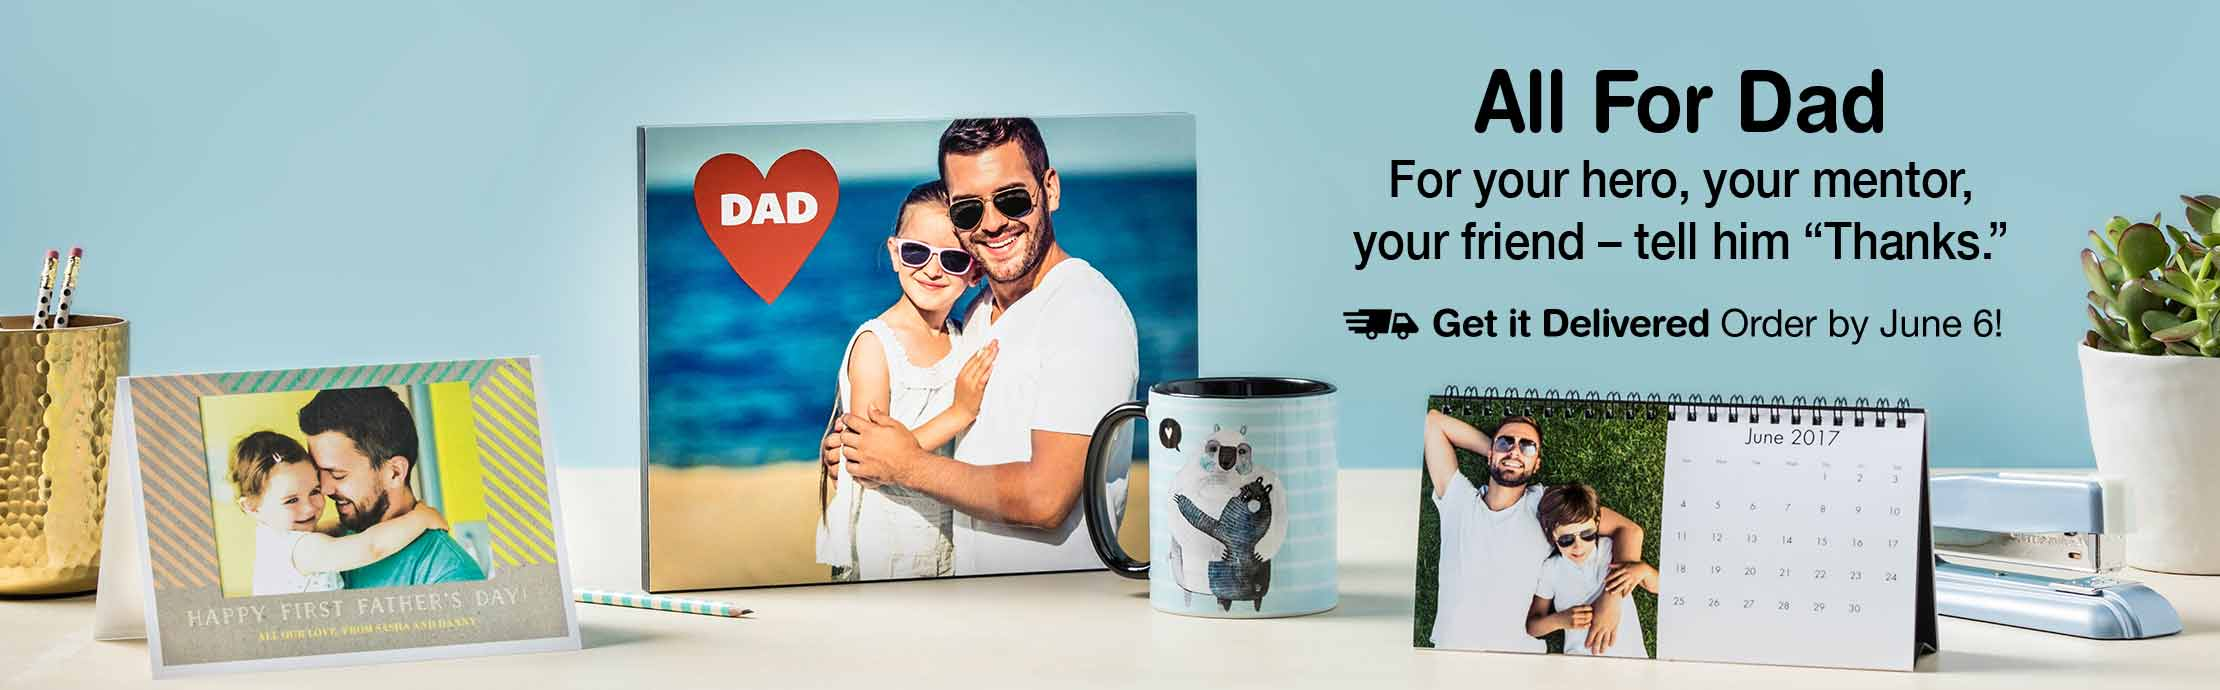 Personalized fathers day cards gifts walgreens photo fathers day cards gifts kristyandbryce Images